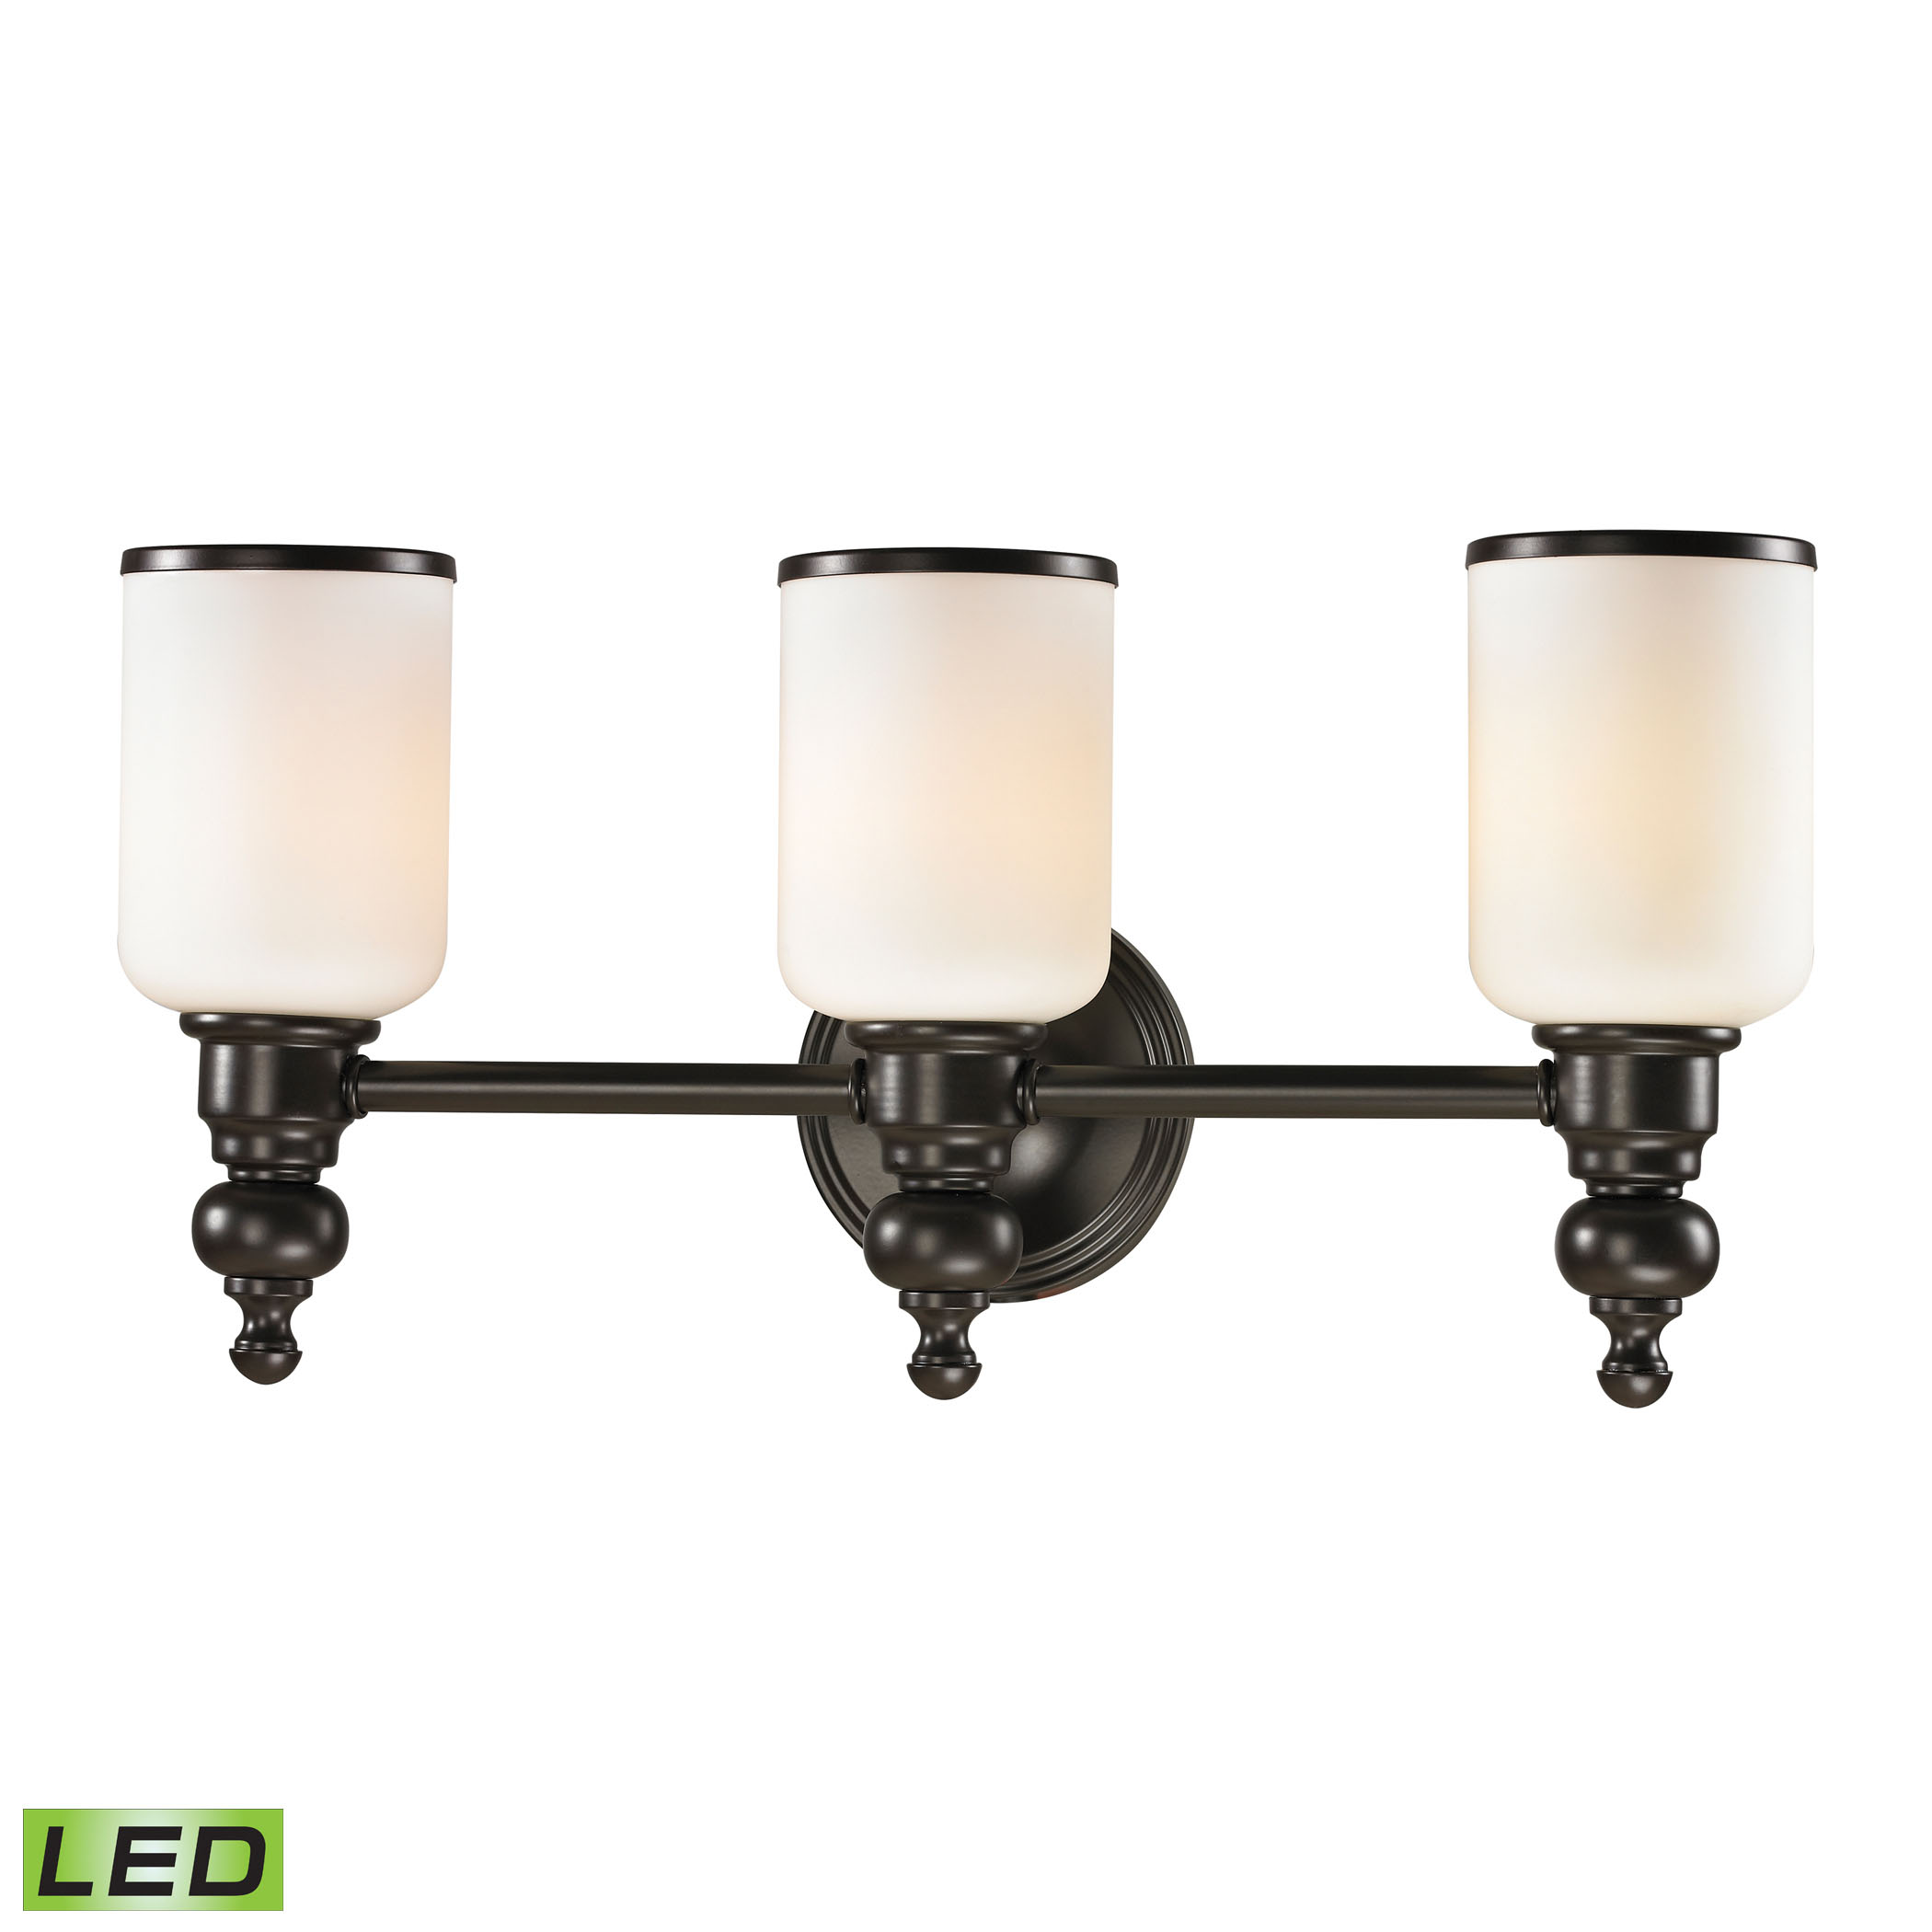 Bristol Collection 3 Light Bath in Oil Rubbed Bronze - LED, 800 Lumens (2400 Lumens Total) with Full